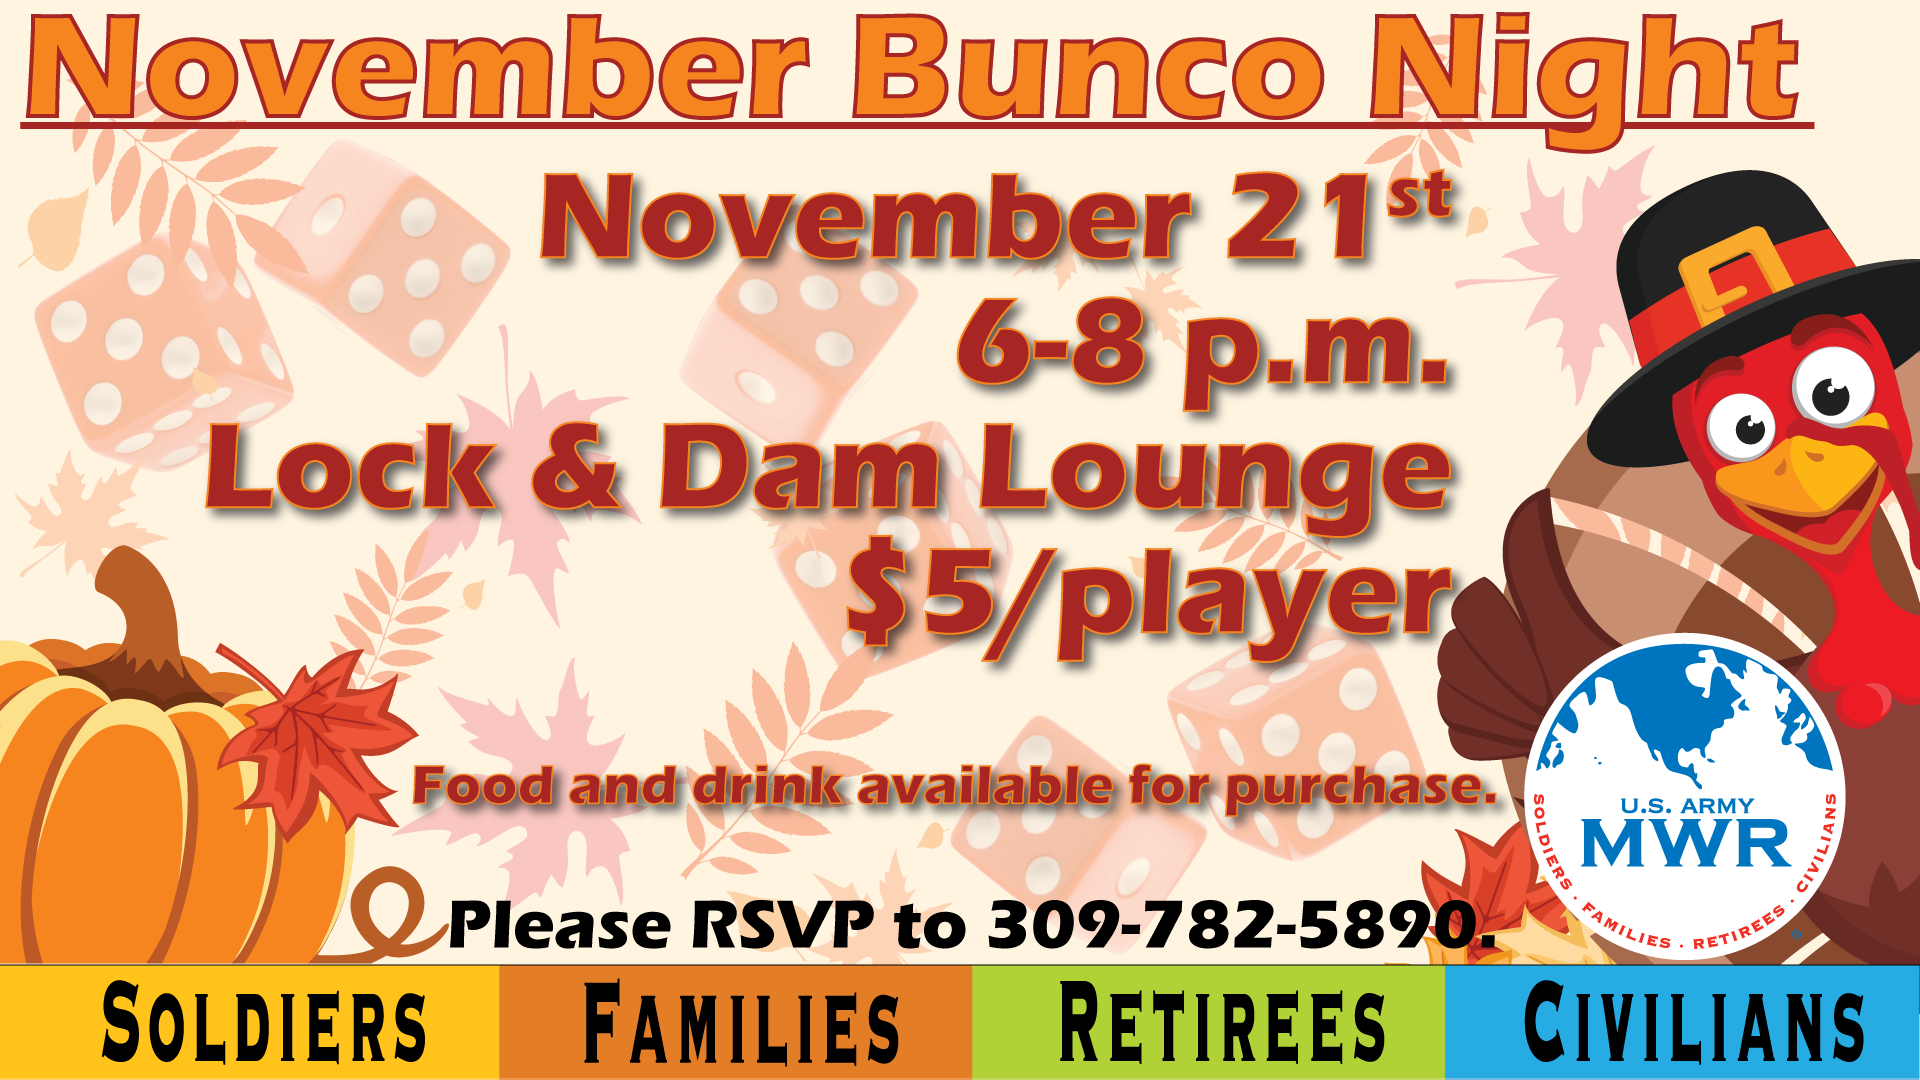 November Bunco Night